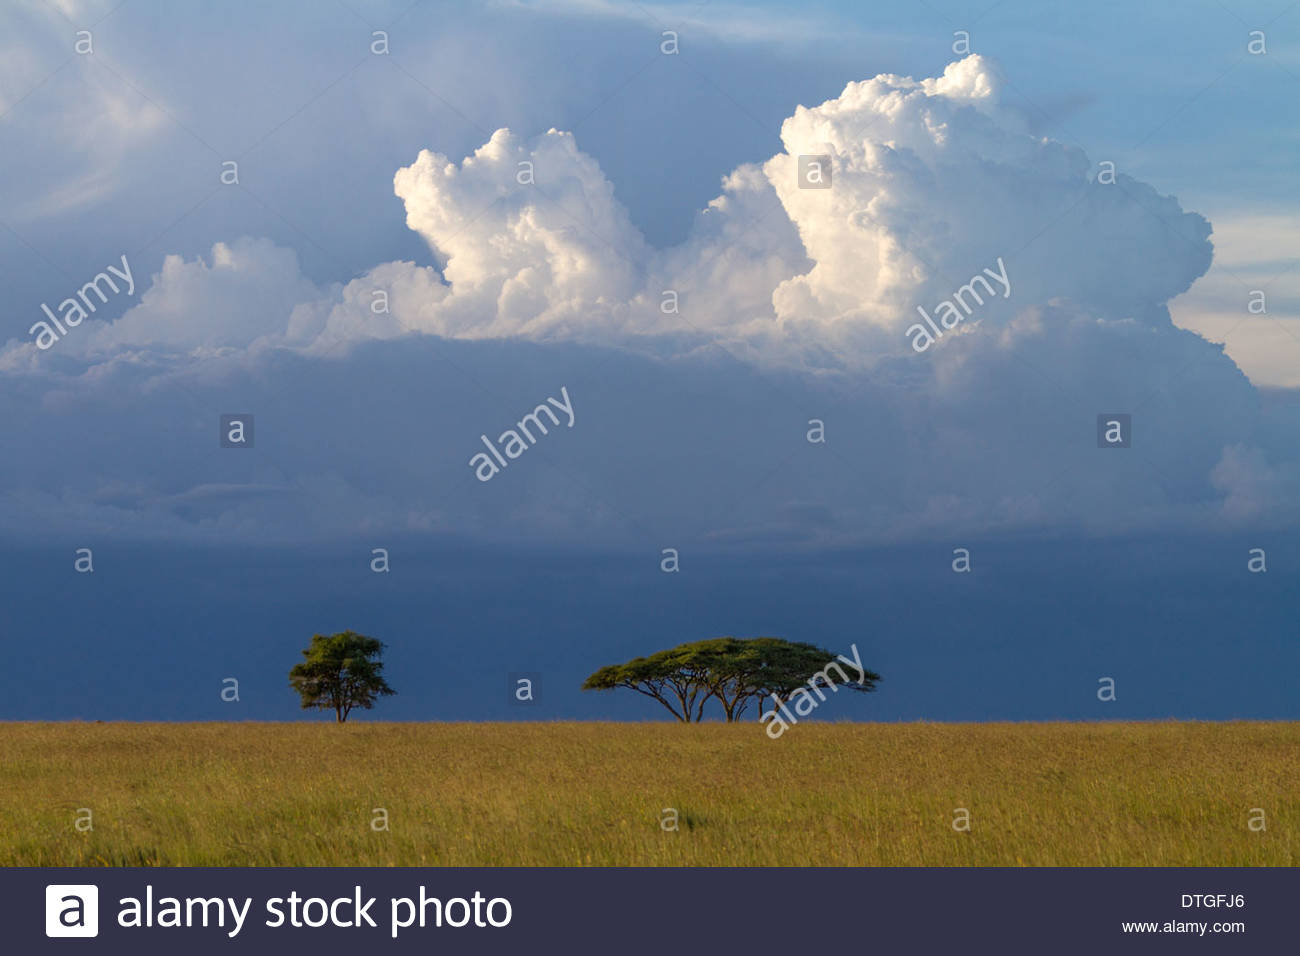 Clouds Over Acacia Trees On The African Savanna, Serengeti National Park, Tanzania - Stock Image